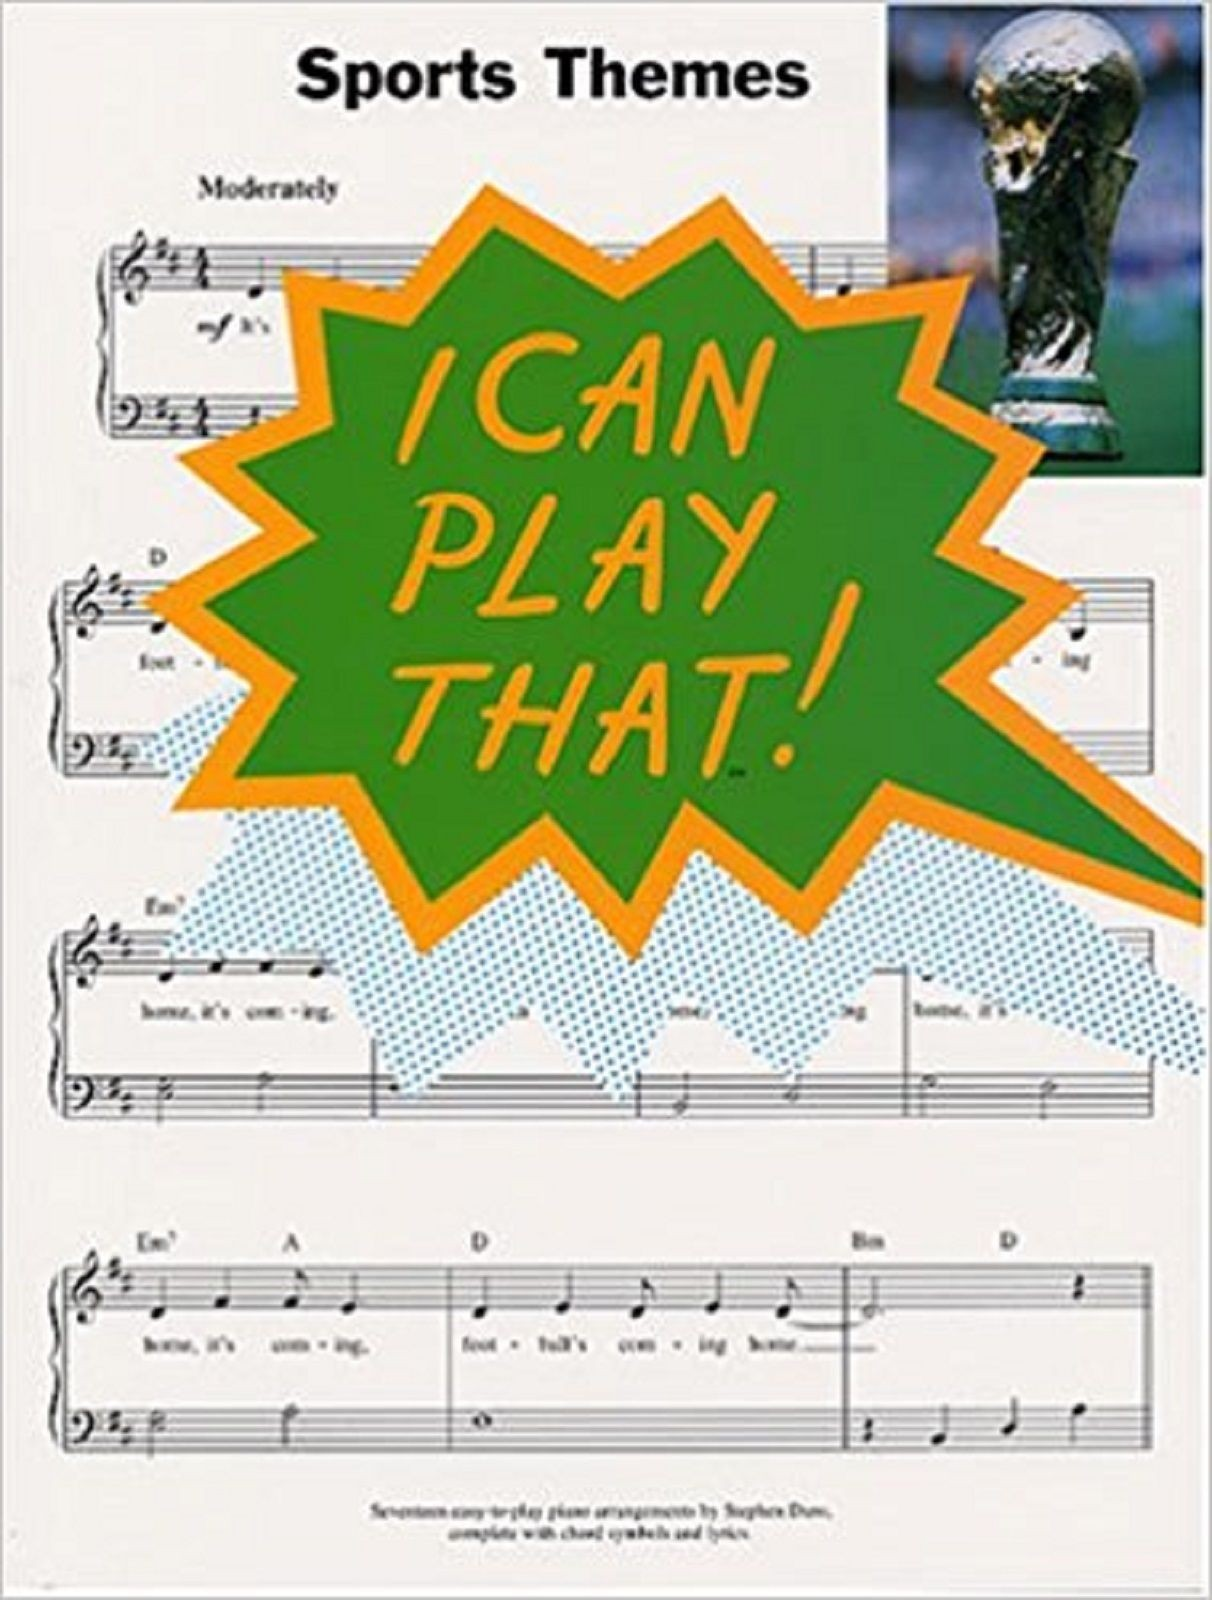 I Can Play That Sports Theme Book for Piano World Cup Wimbledon Rugby S148